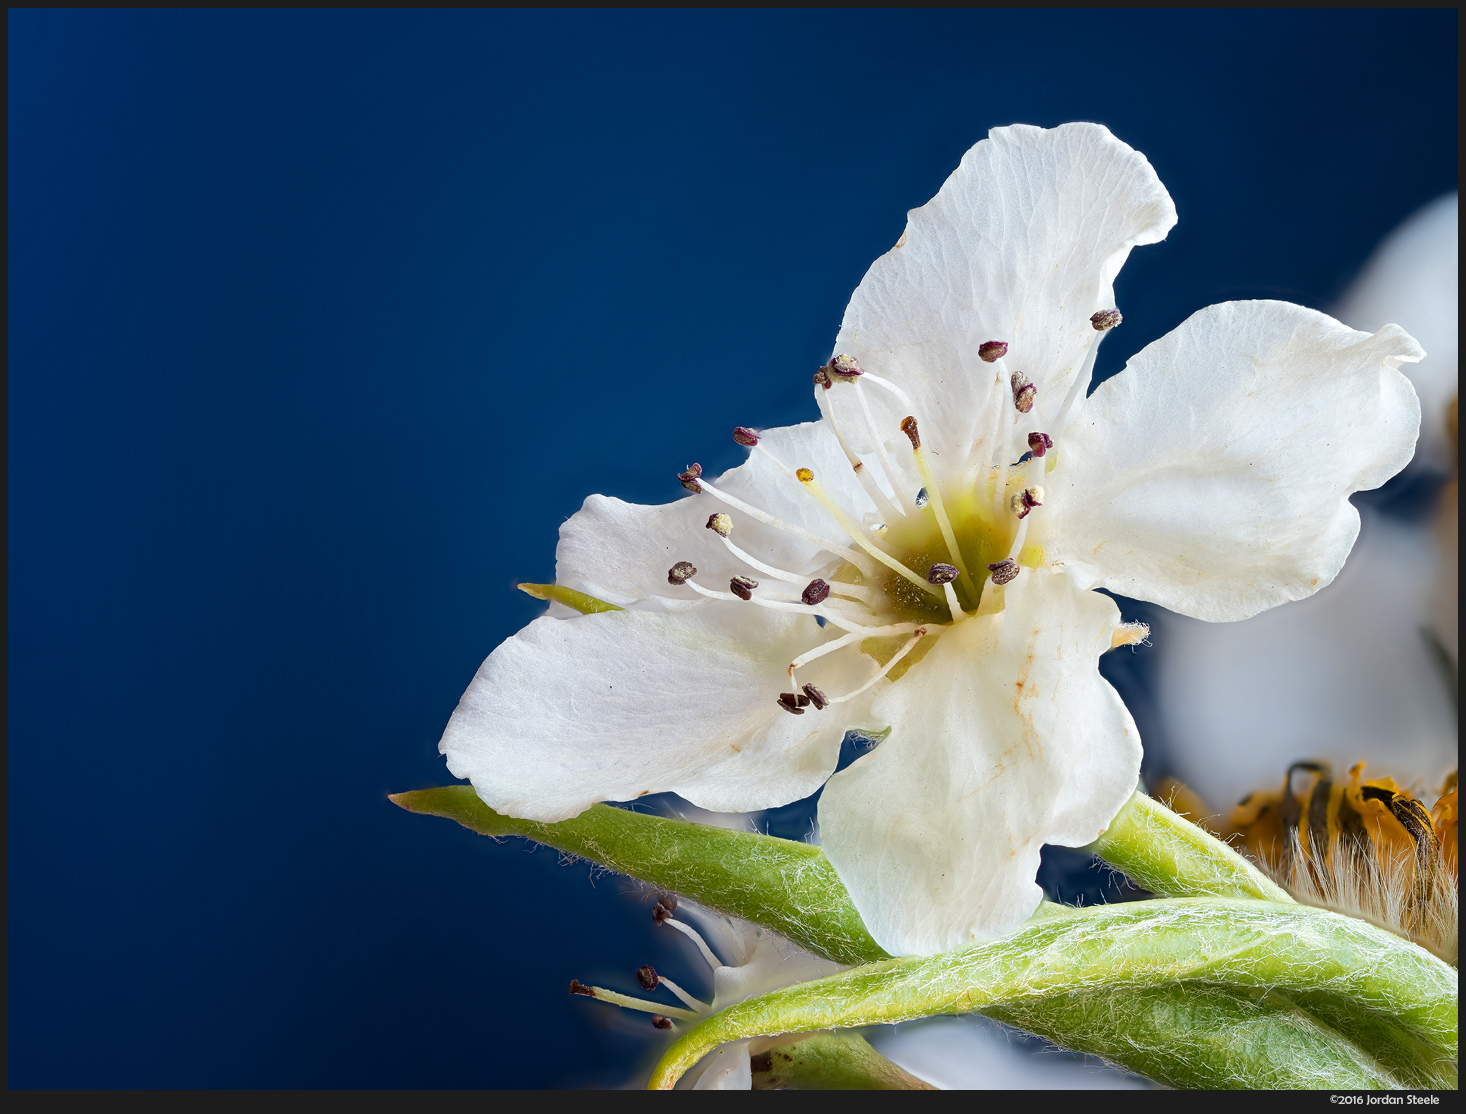 Blossom - Focus stack of 40 images, Olympus Pen-F with Olympus 60mm f/2.8 @ f/4